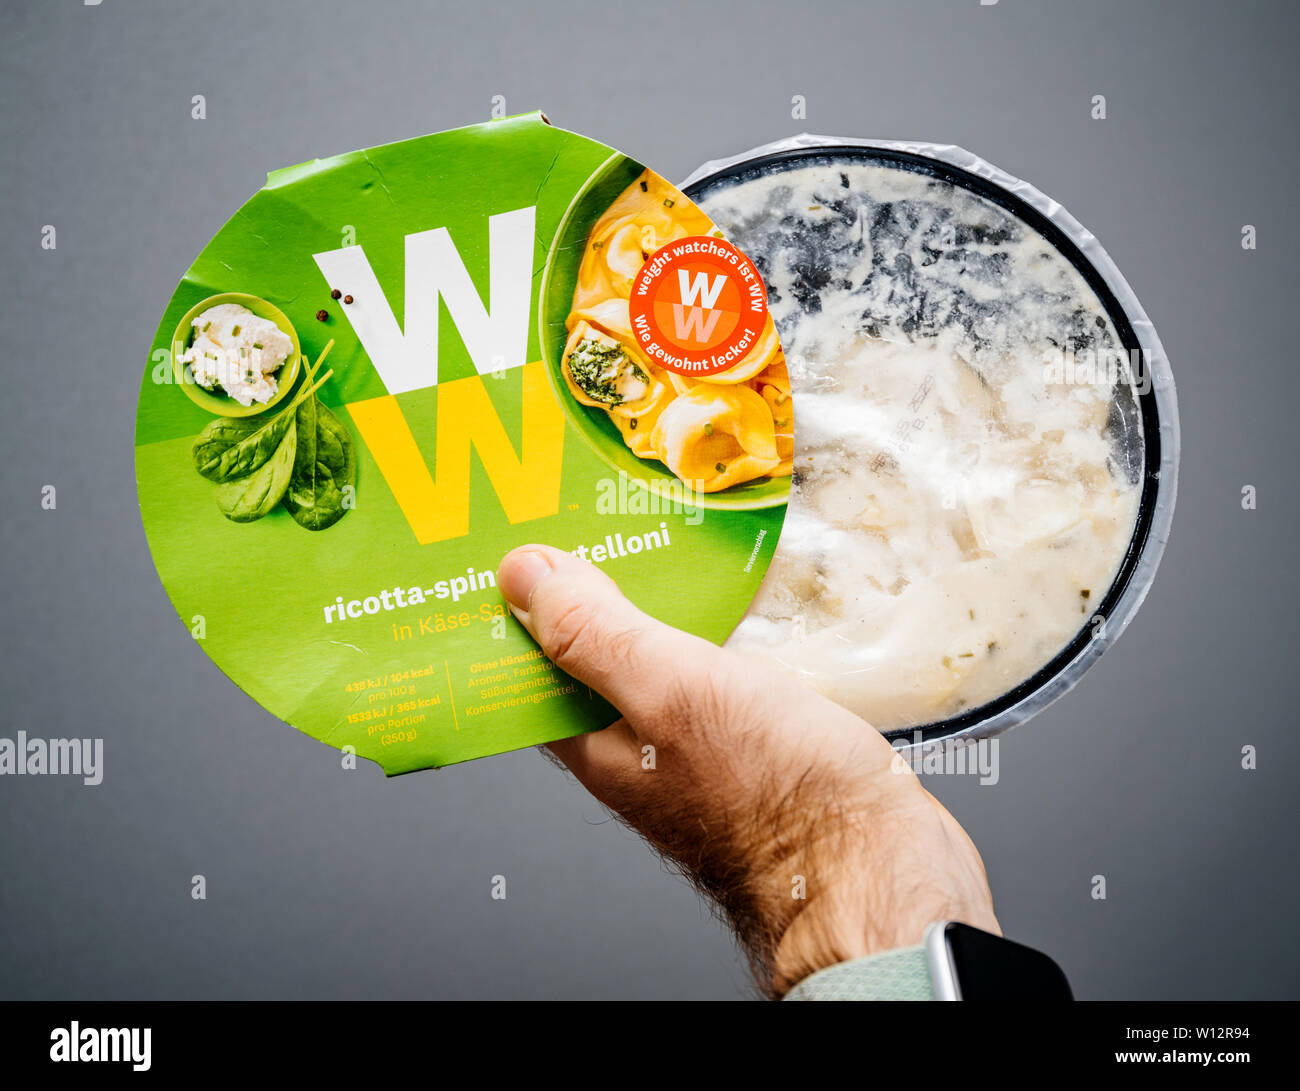 Paris, France - May 19, 2019: Man hand holding Weight Watchers Ricotta Spinach and Tortellini with cheese sauce gray isolated background - Stock Image